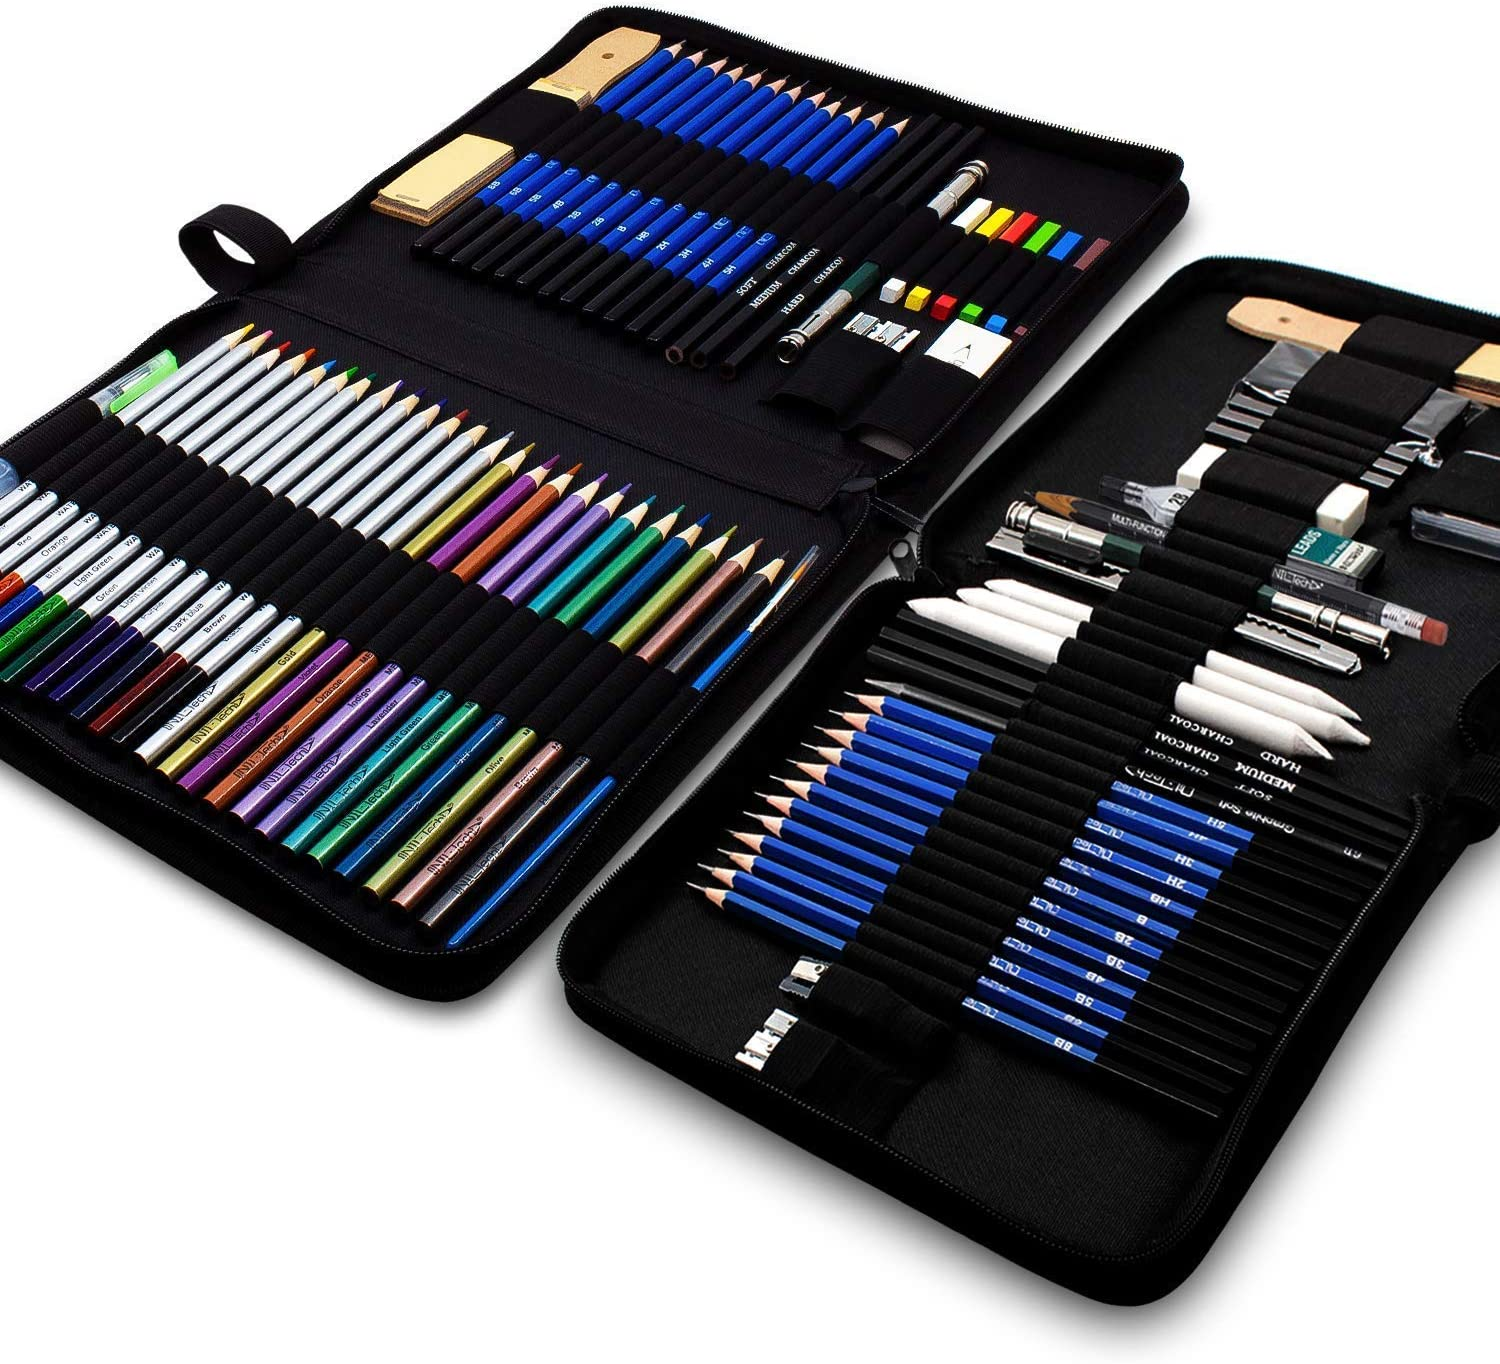 37-Piece Drawing Set PLUS 53-Piece Coloring and Drawing Art Set - With Sketch Pad and Drawing Tutorials Digital Library